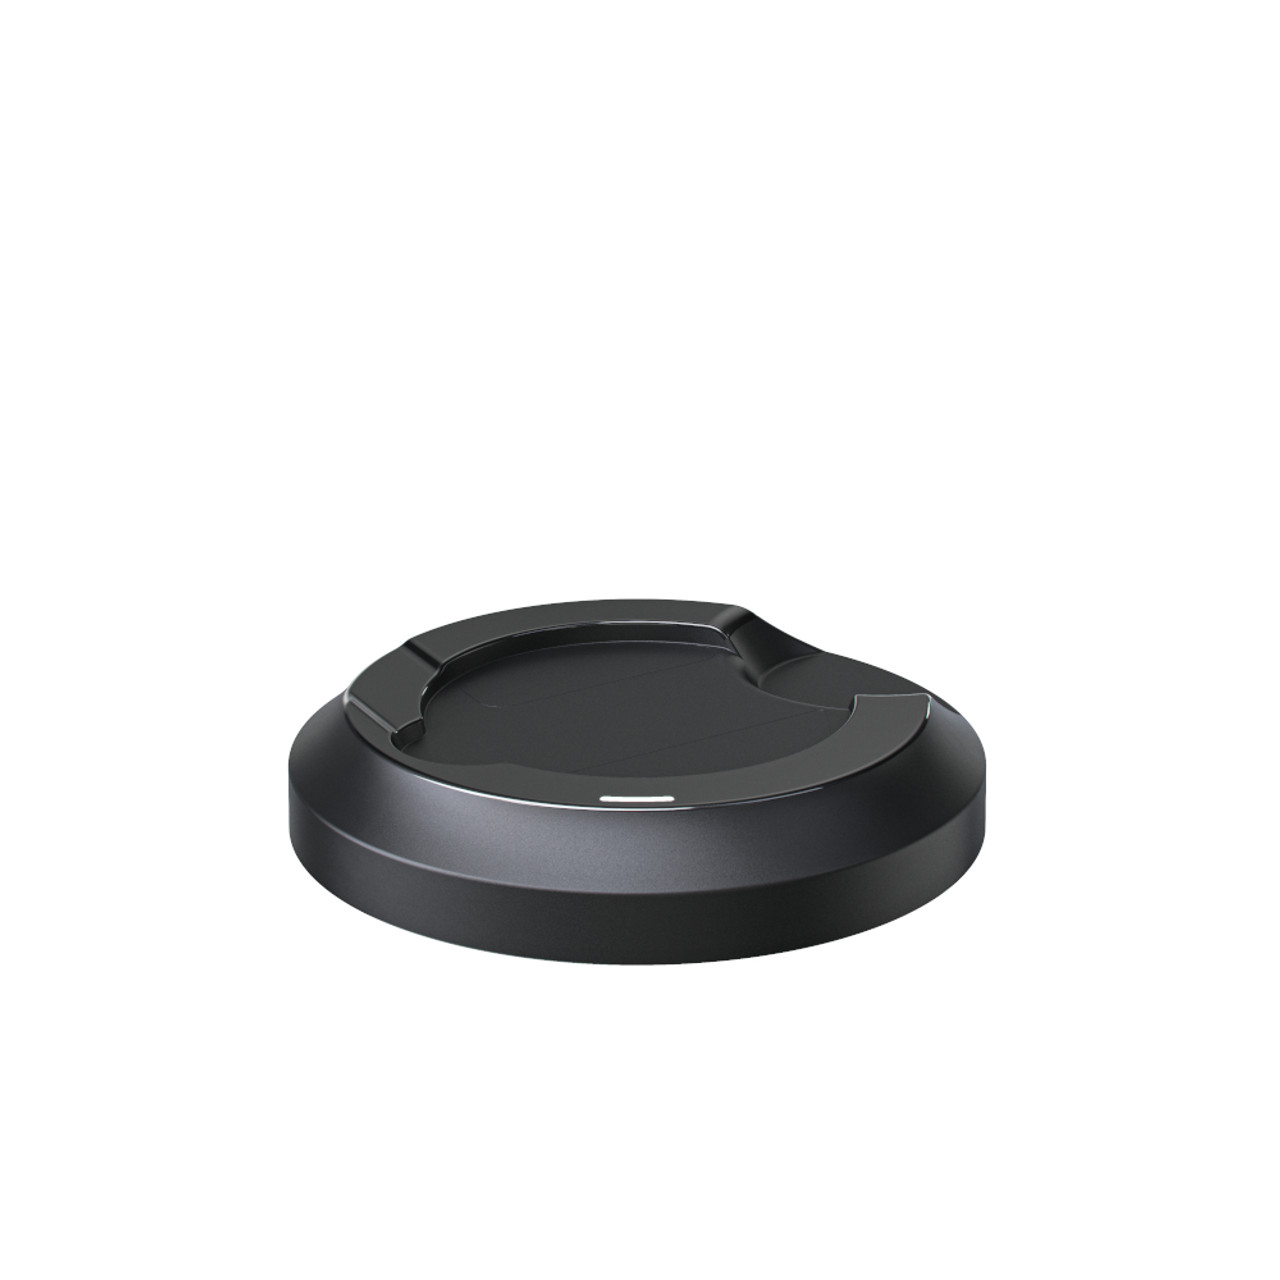 THERAGUN Charger - Multi-Device Wireless Charger - for all GEN4 devices